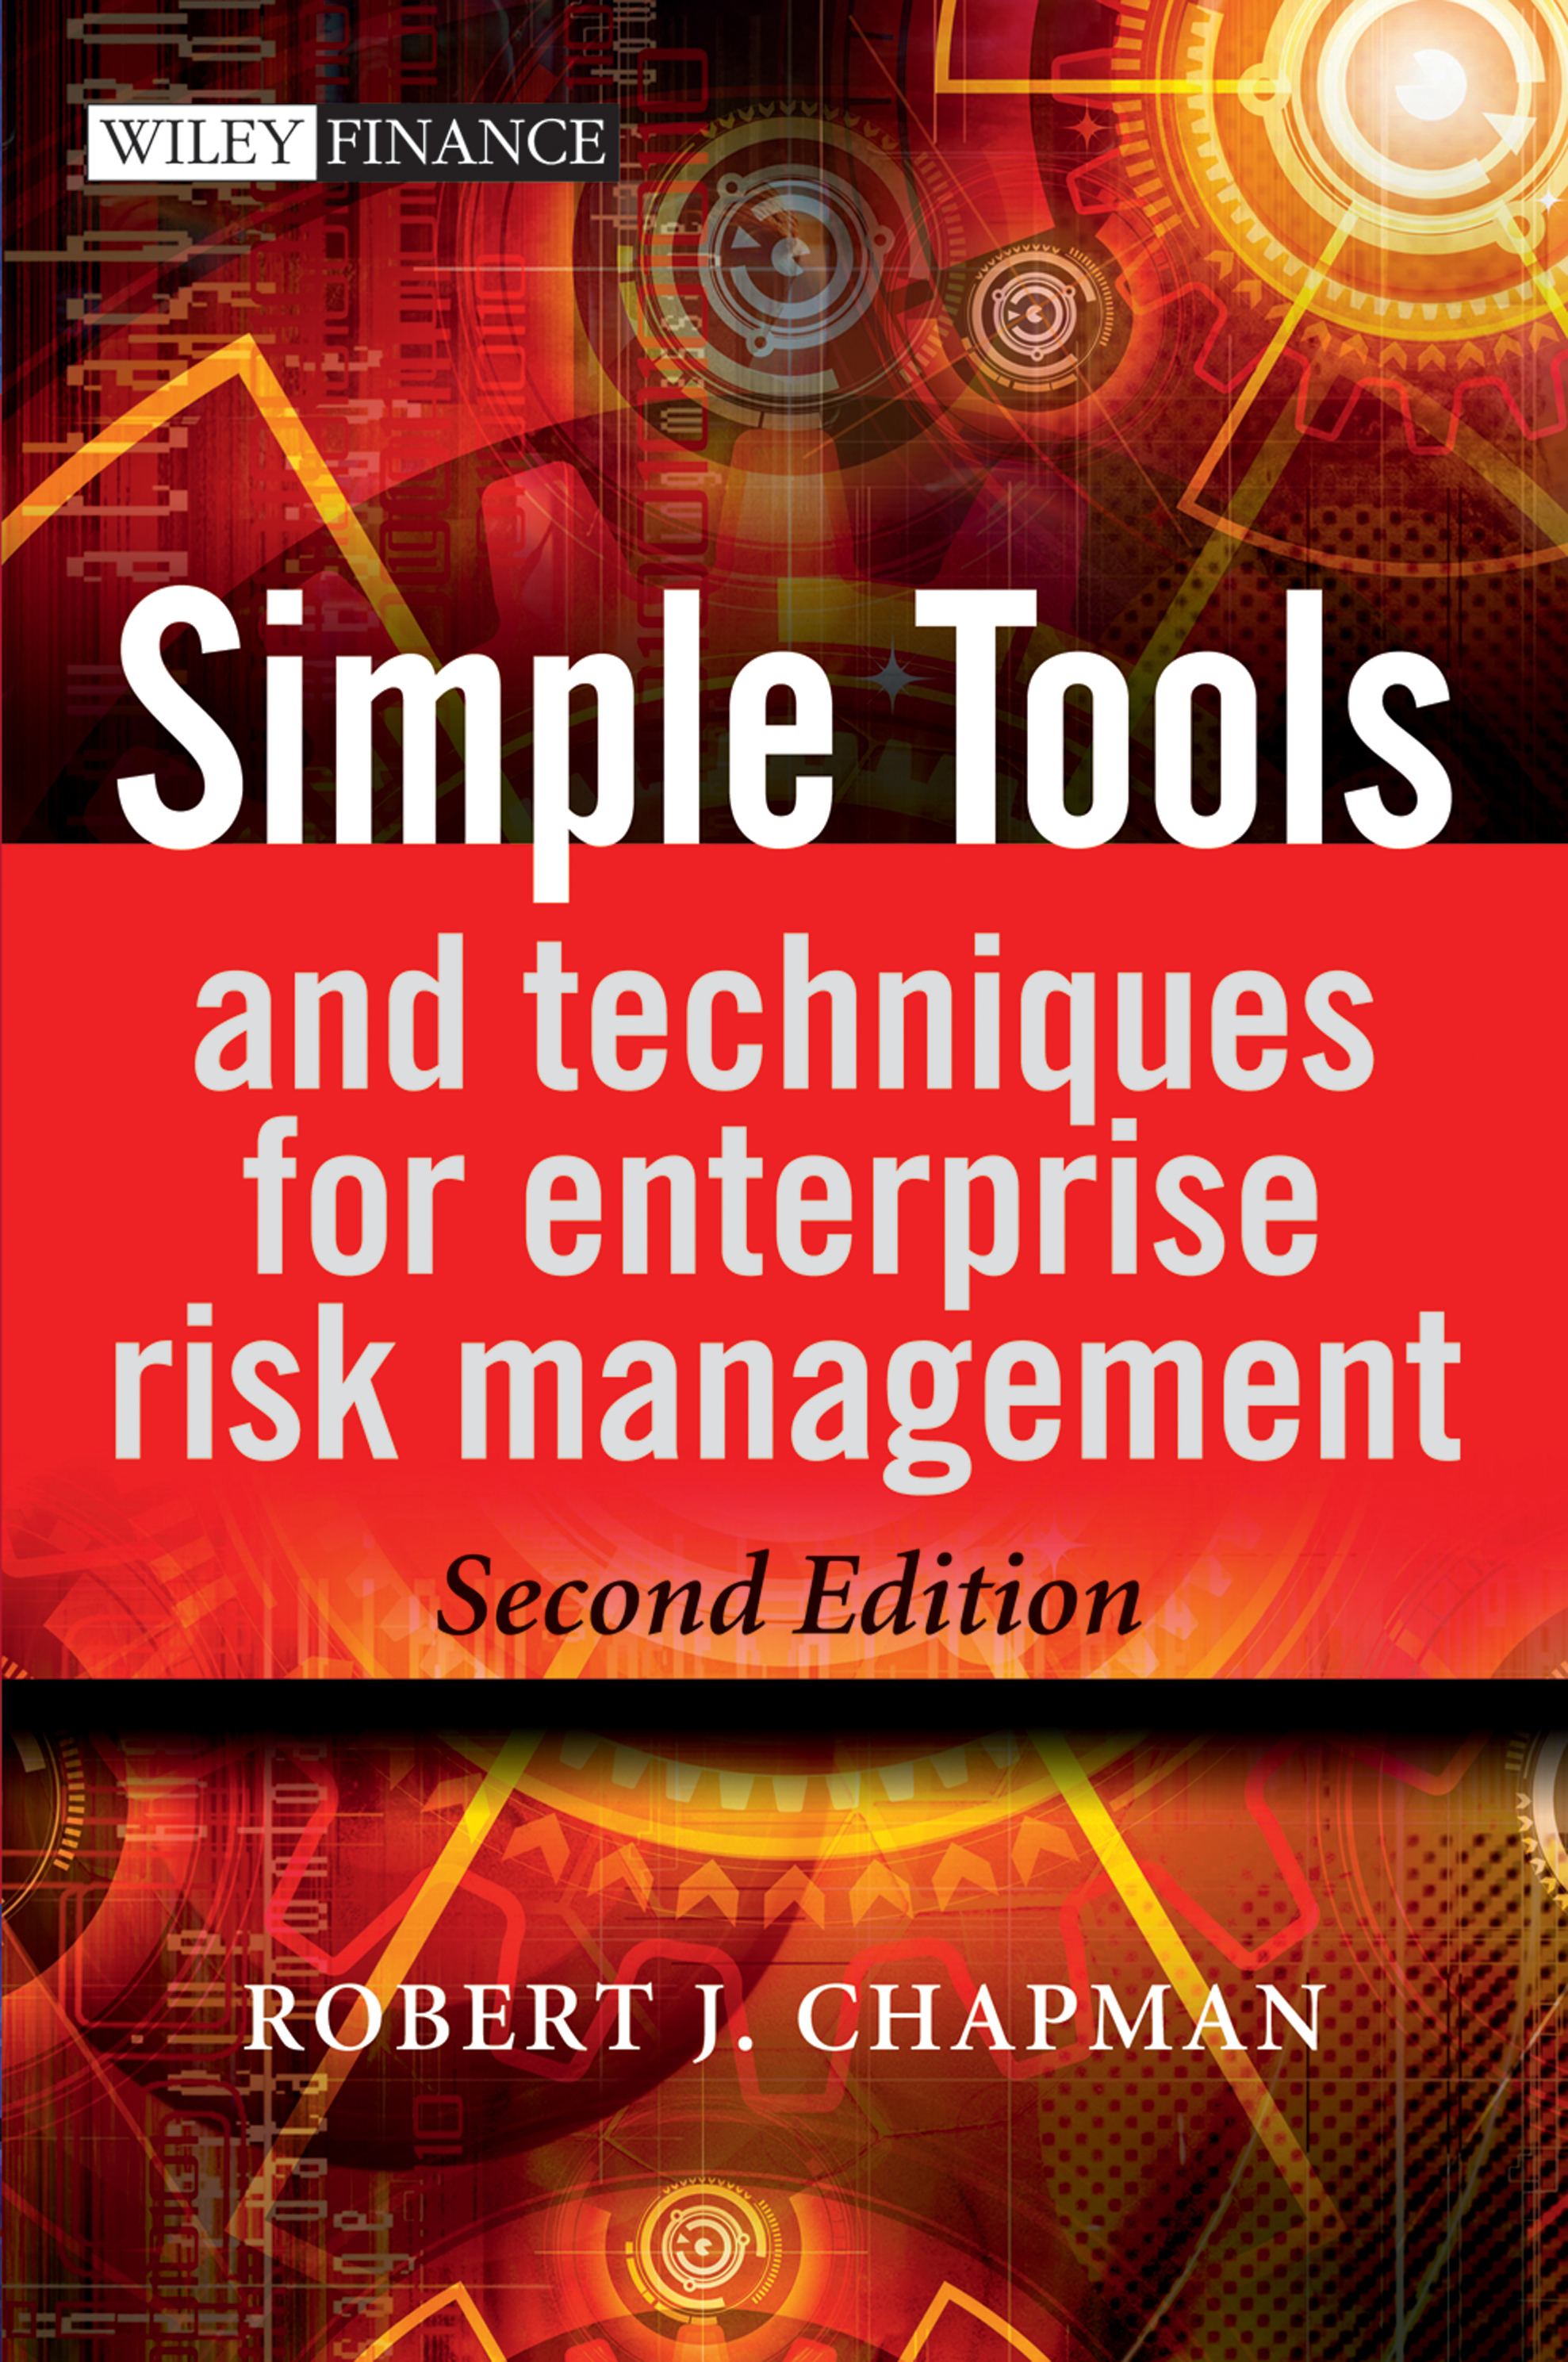 Robert Chapman J. Simple Tools and Techniques for Enterprise Risk Management полотенцесушитель ника econ 60х40 водяной пм 60 40